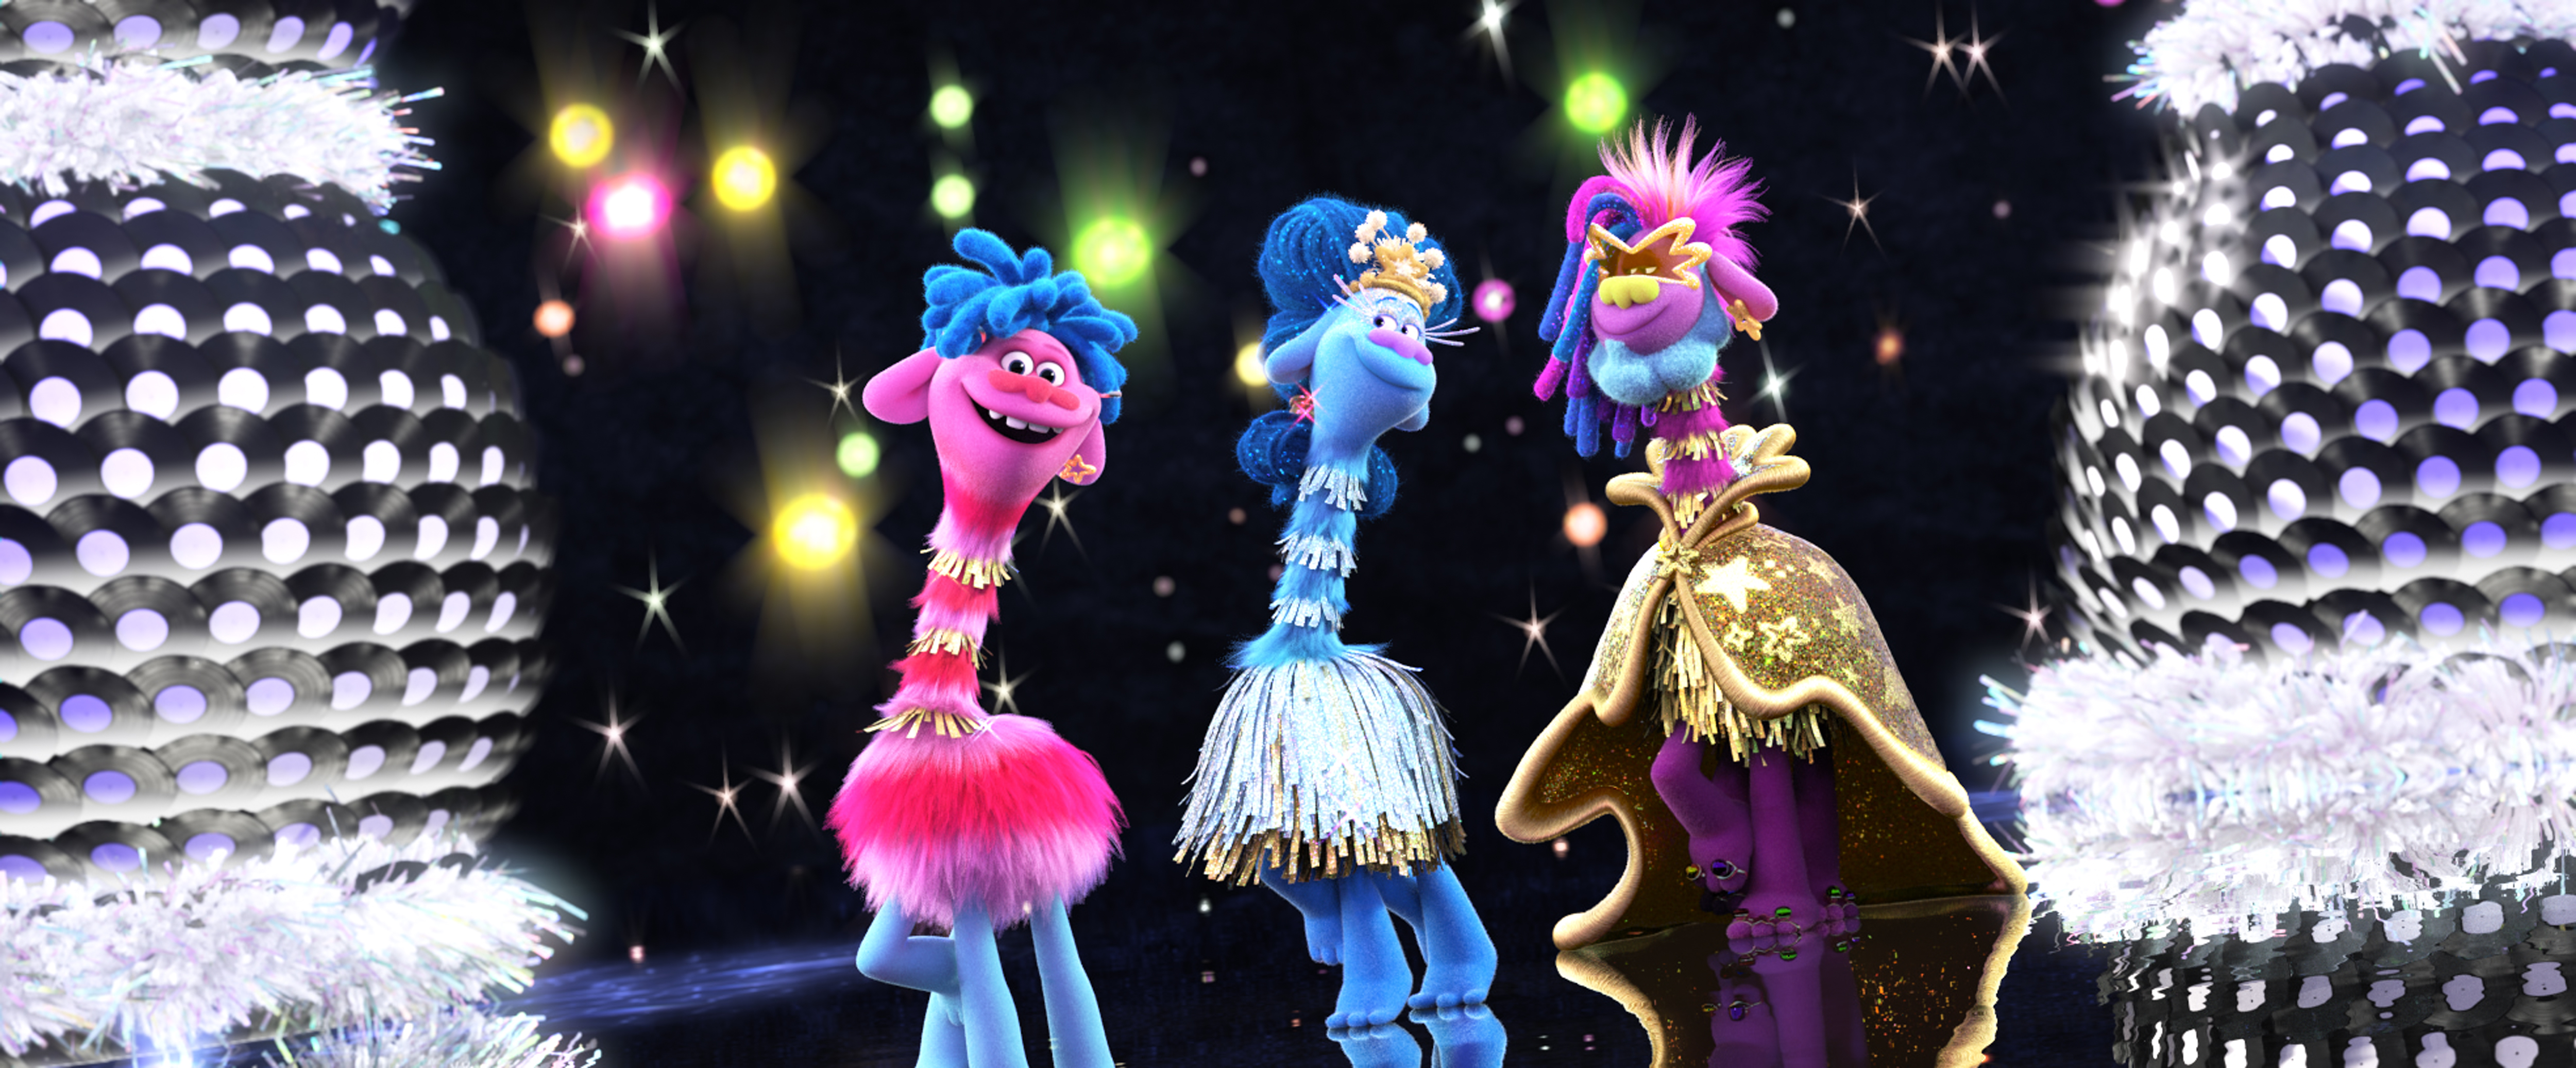 "(from left) Prince D (Anderson .Paak), Queen Essence (Mary J. Blige) and King Quincy (George Clinton) in DreamWorks Animation's ""Trolls World Tour,"" directed by Walt Dohrn."